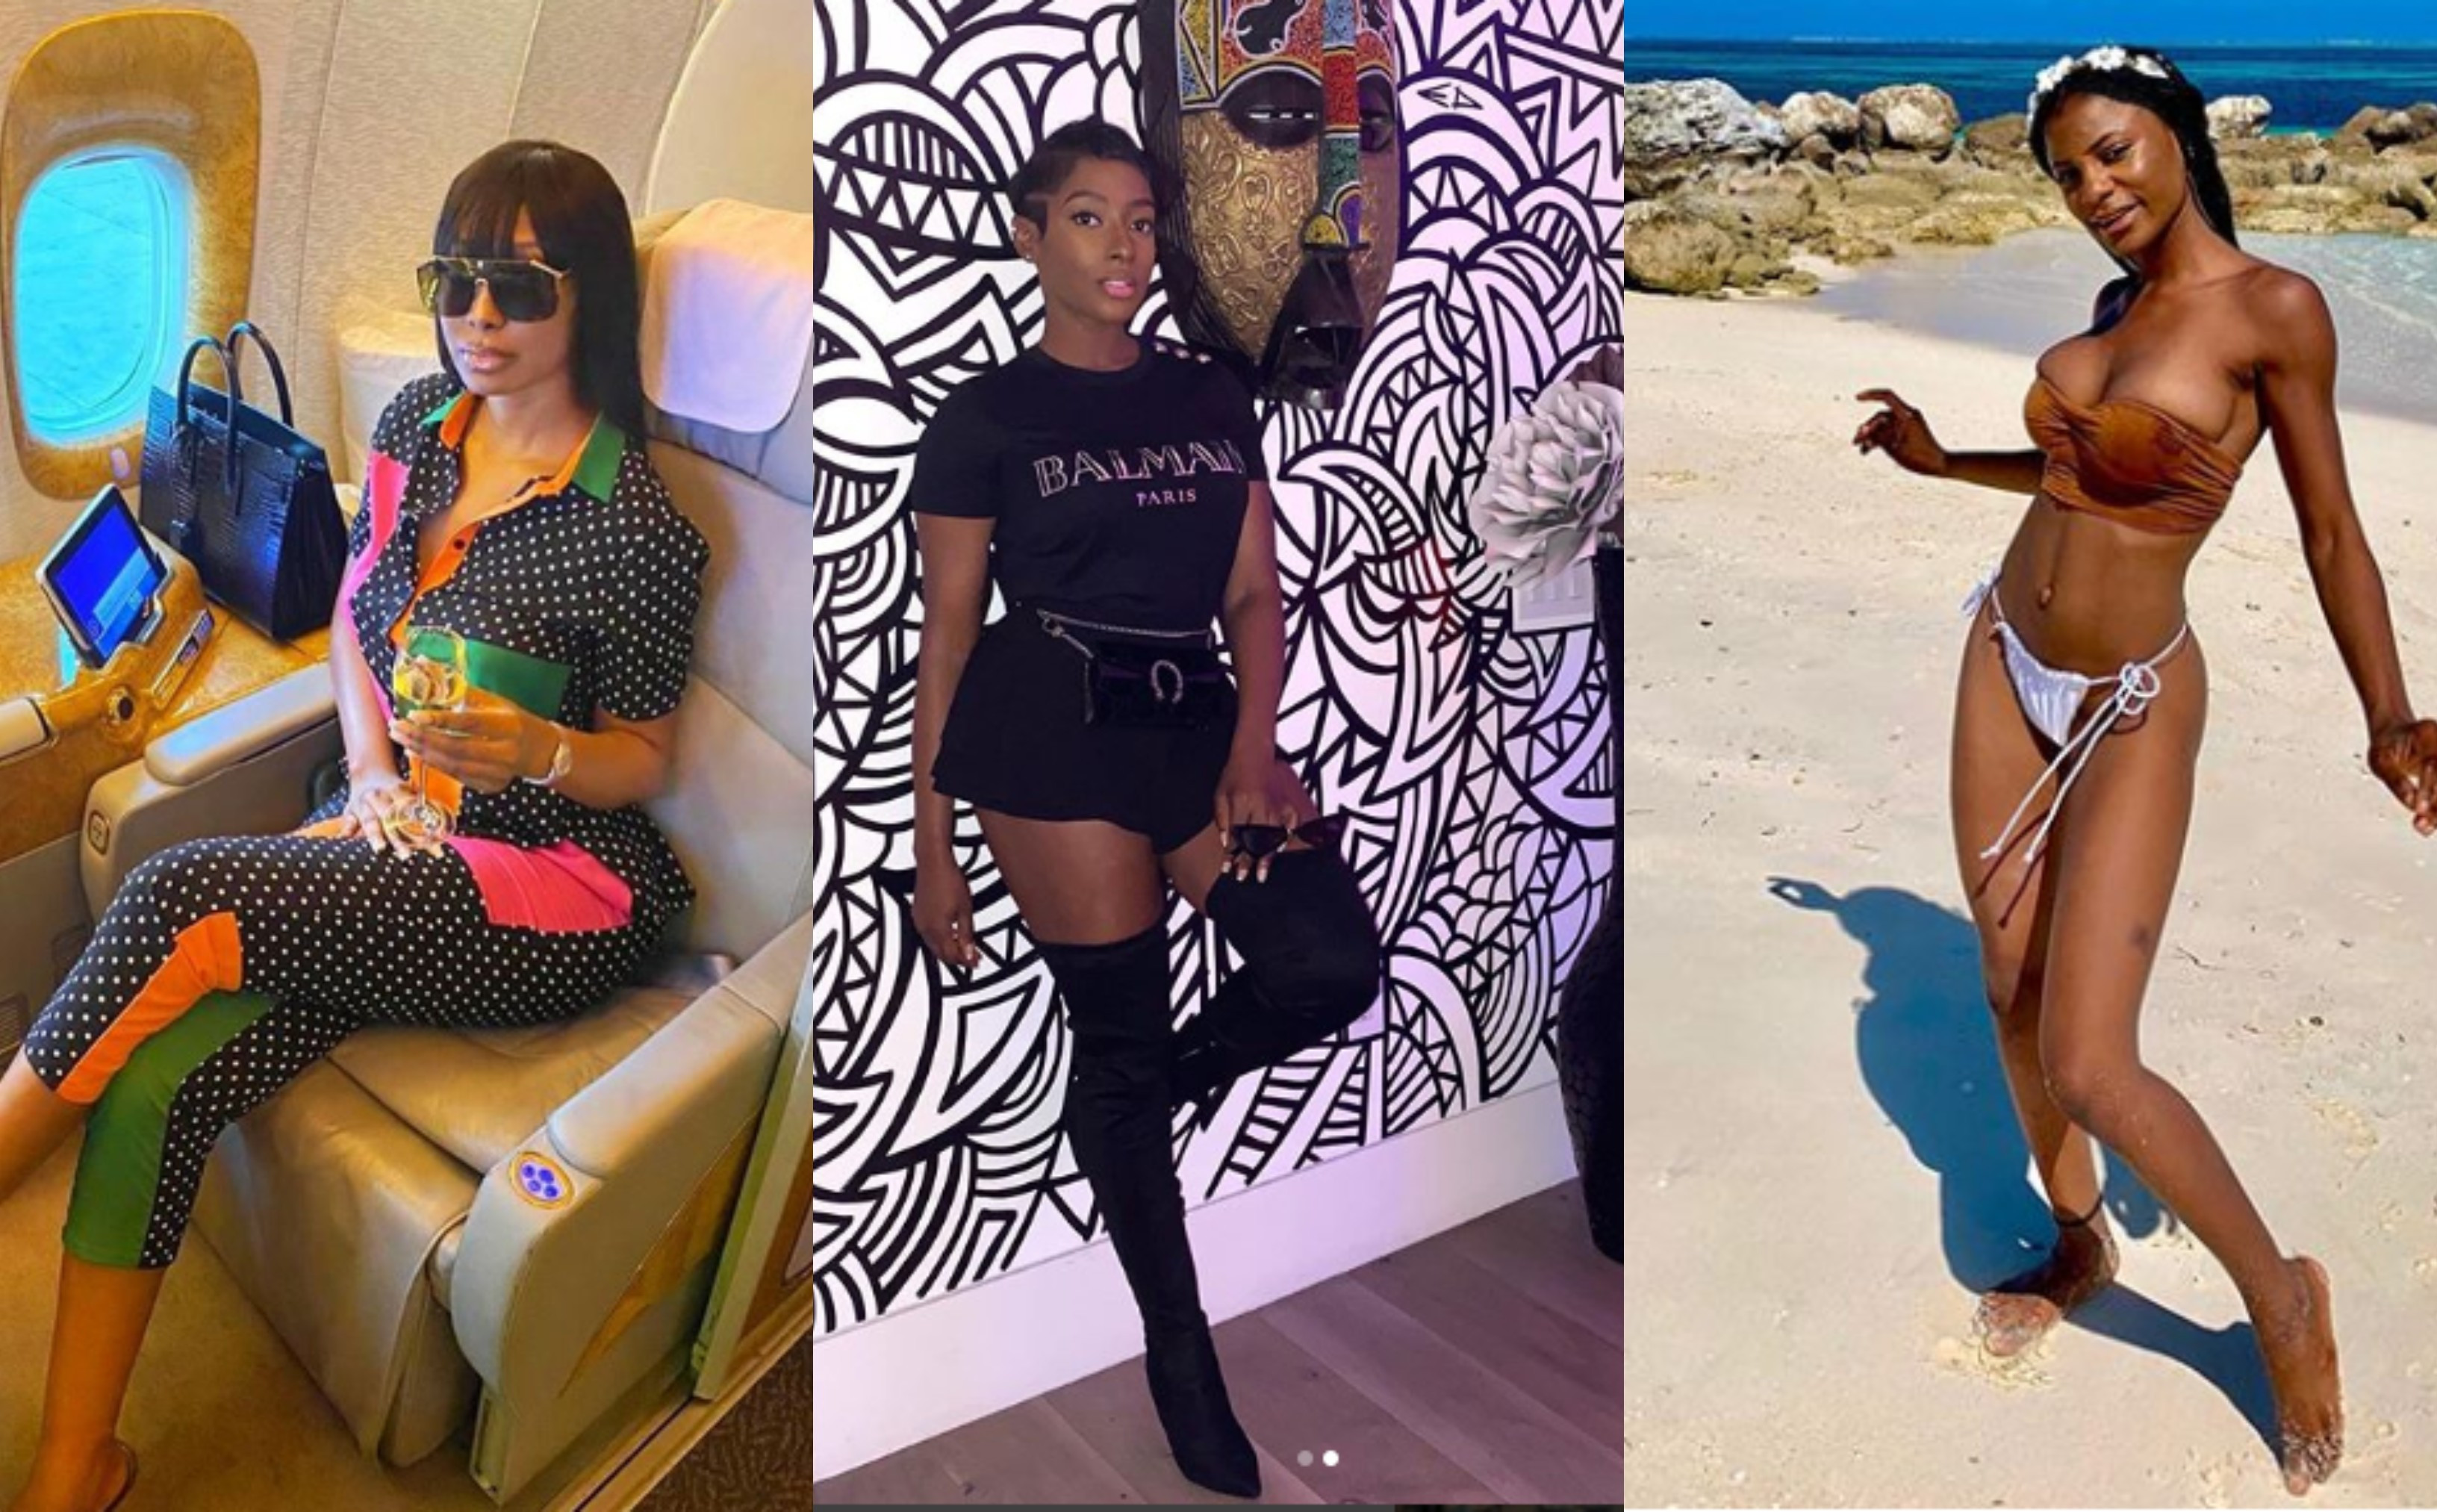 Diane and Sophia Egbueje drag Actress Dorcas Fapson for being a 'leech', shares 'proof' to back claims of her borrowing things from them for Instagram lindaikejisblog